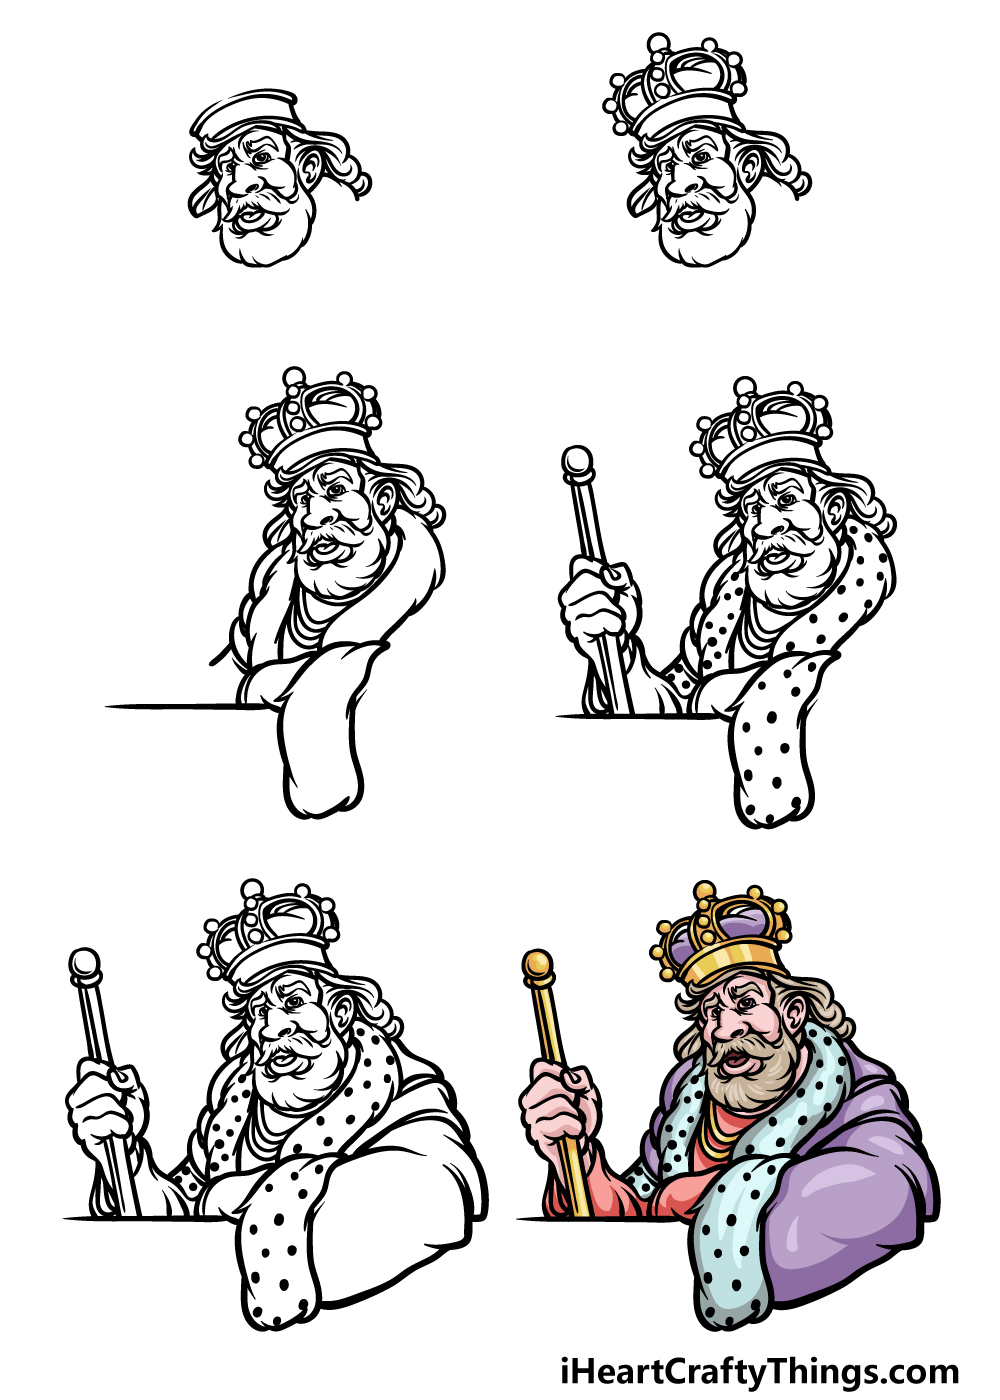 how to draw a King in 6 steps